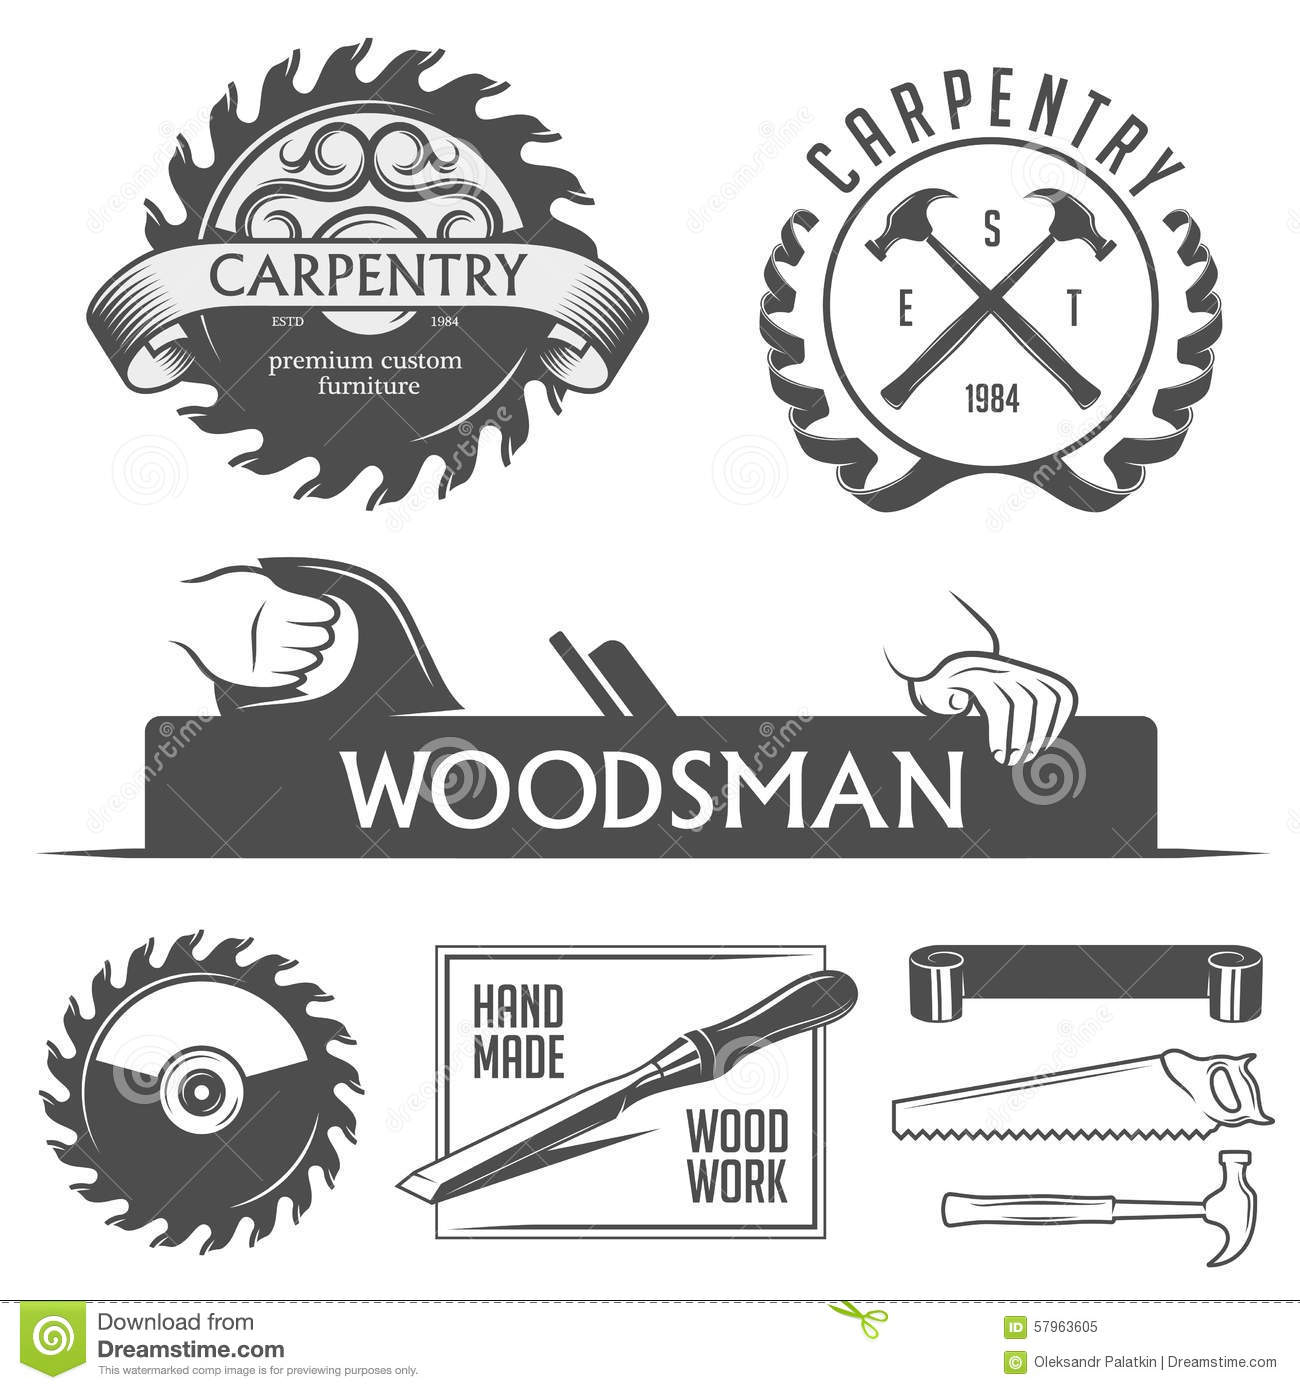 Carpentry and woodwork design elements in vintage stock for Logo drawing tool